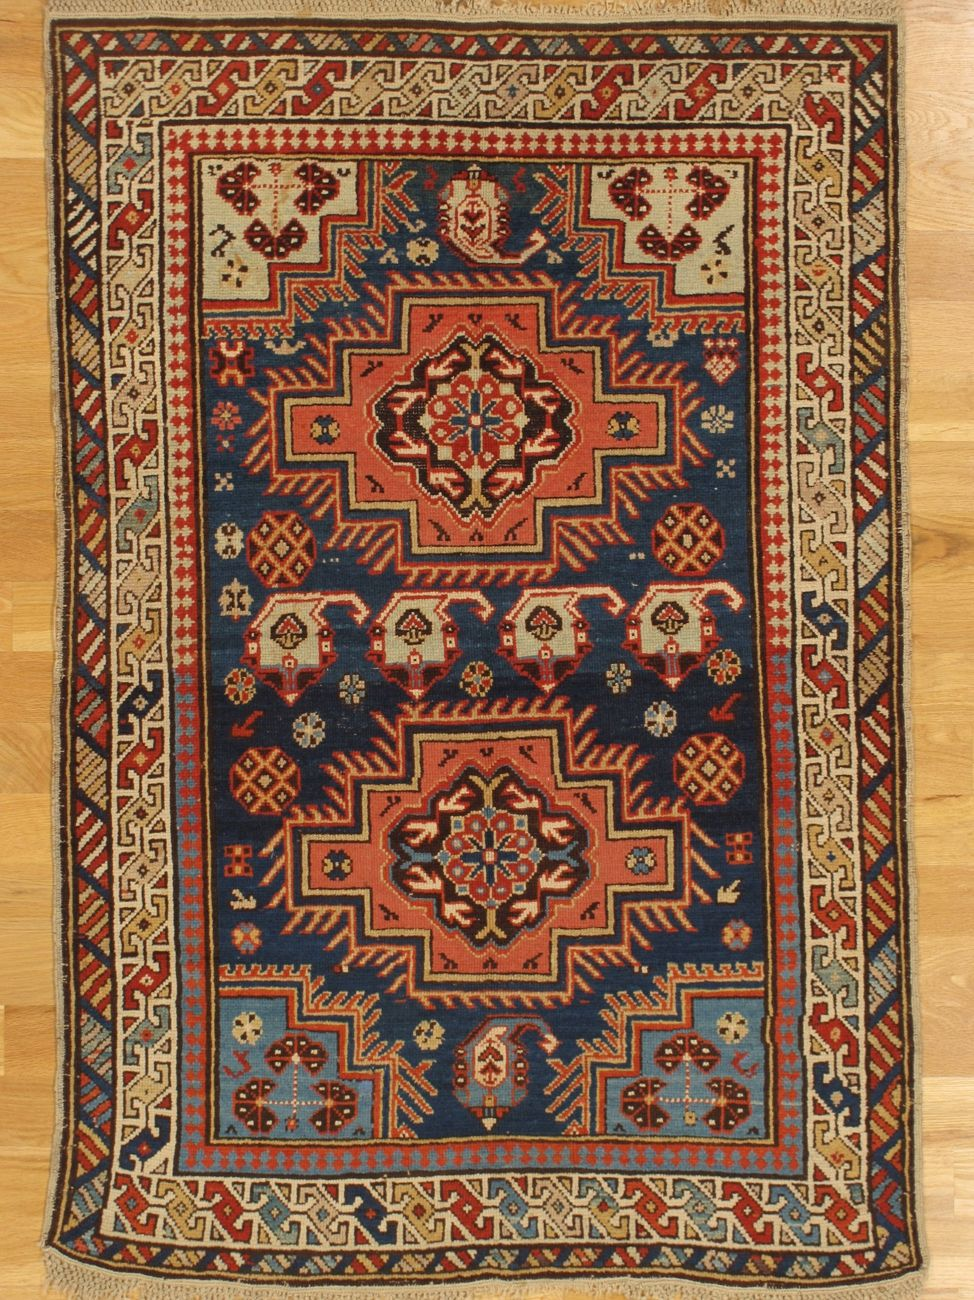 Derbent Rug From Eastern Caucasus Age Circa 1890 Size 4 11 X3 5 150x104 Cm Sold Rugs Rugs On Carpet Antique Textiles